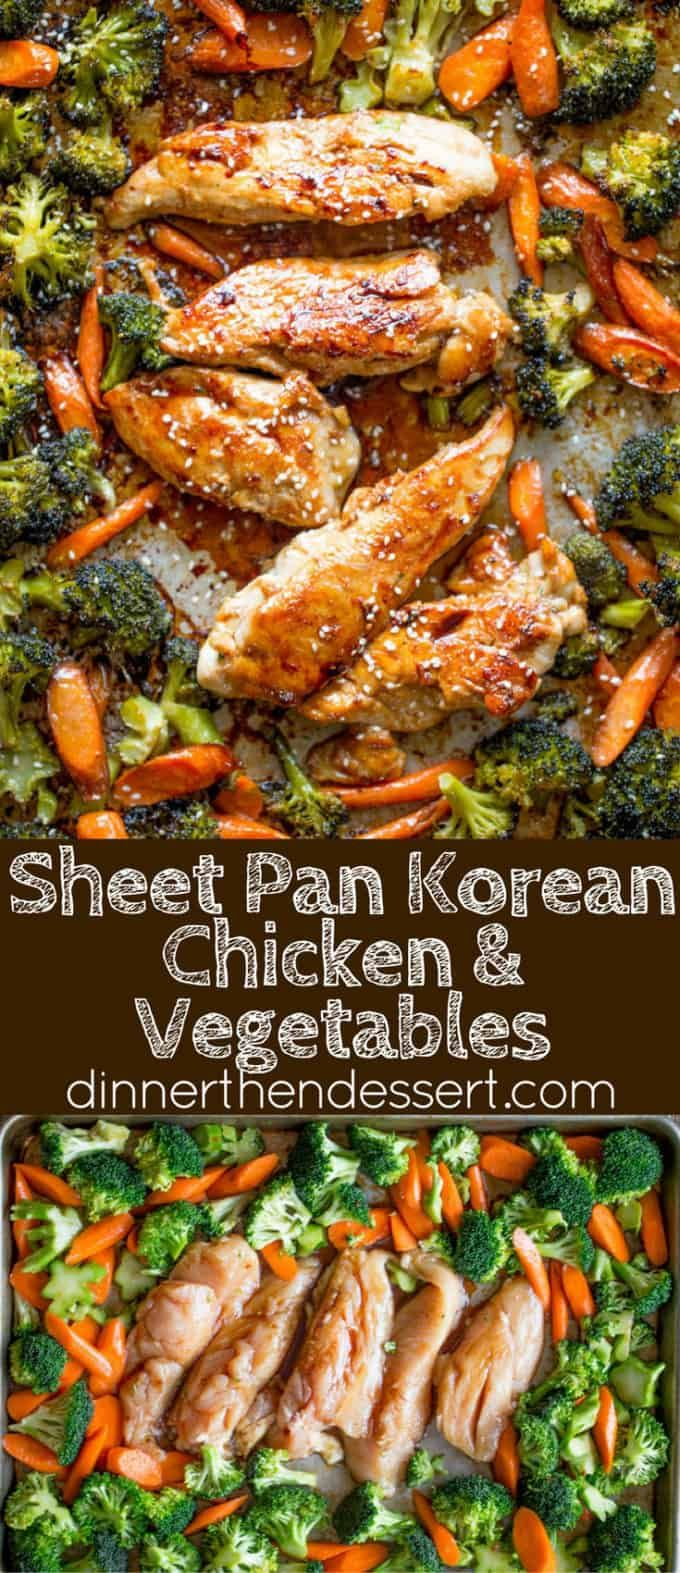 Sheet Pan Korean Chicken and Vegetables are a delicious and easy weeknight meal that cooks in one pan and makes crispy tender vegetables and moist sweet and garlicky chicken. #onepandinnerschicken